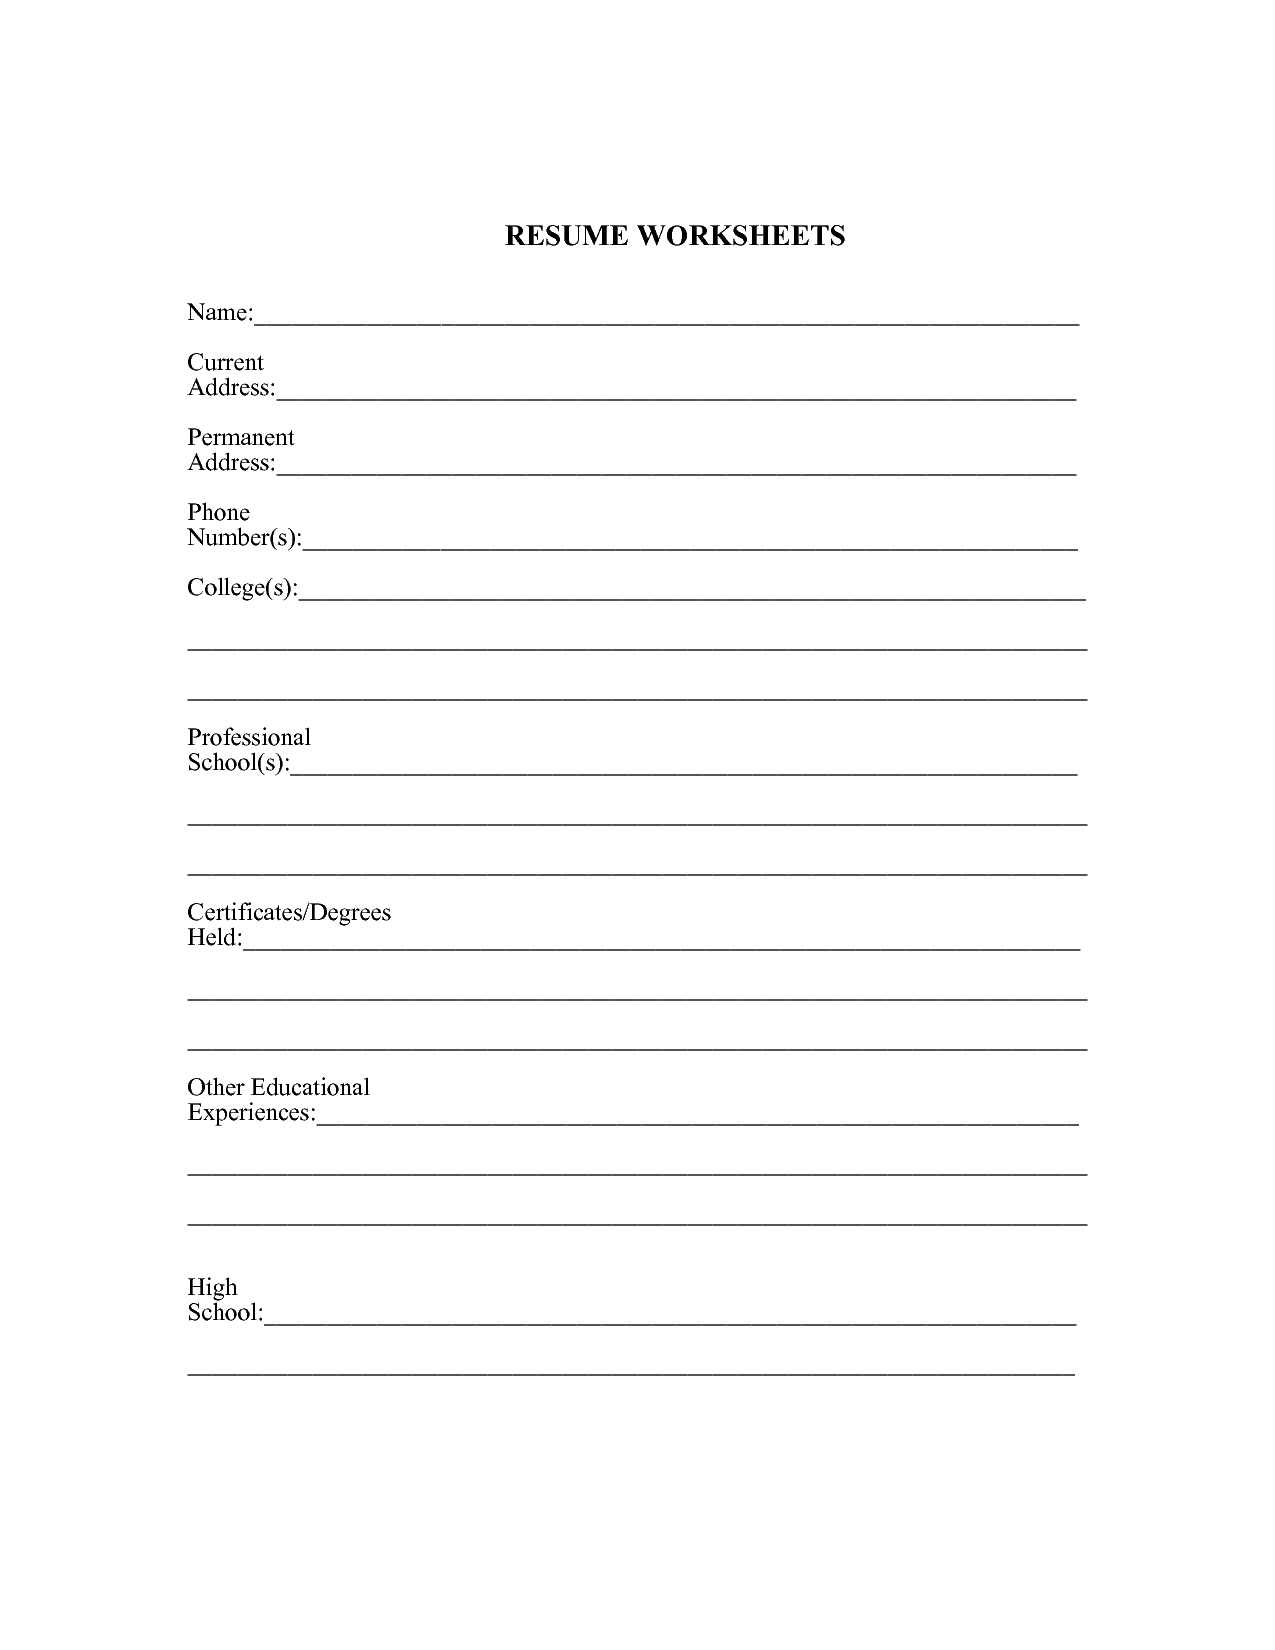 17 Best Images Of Creating A Resume Worksheet